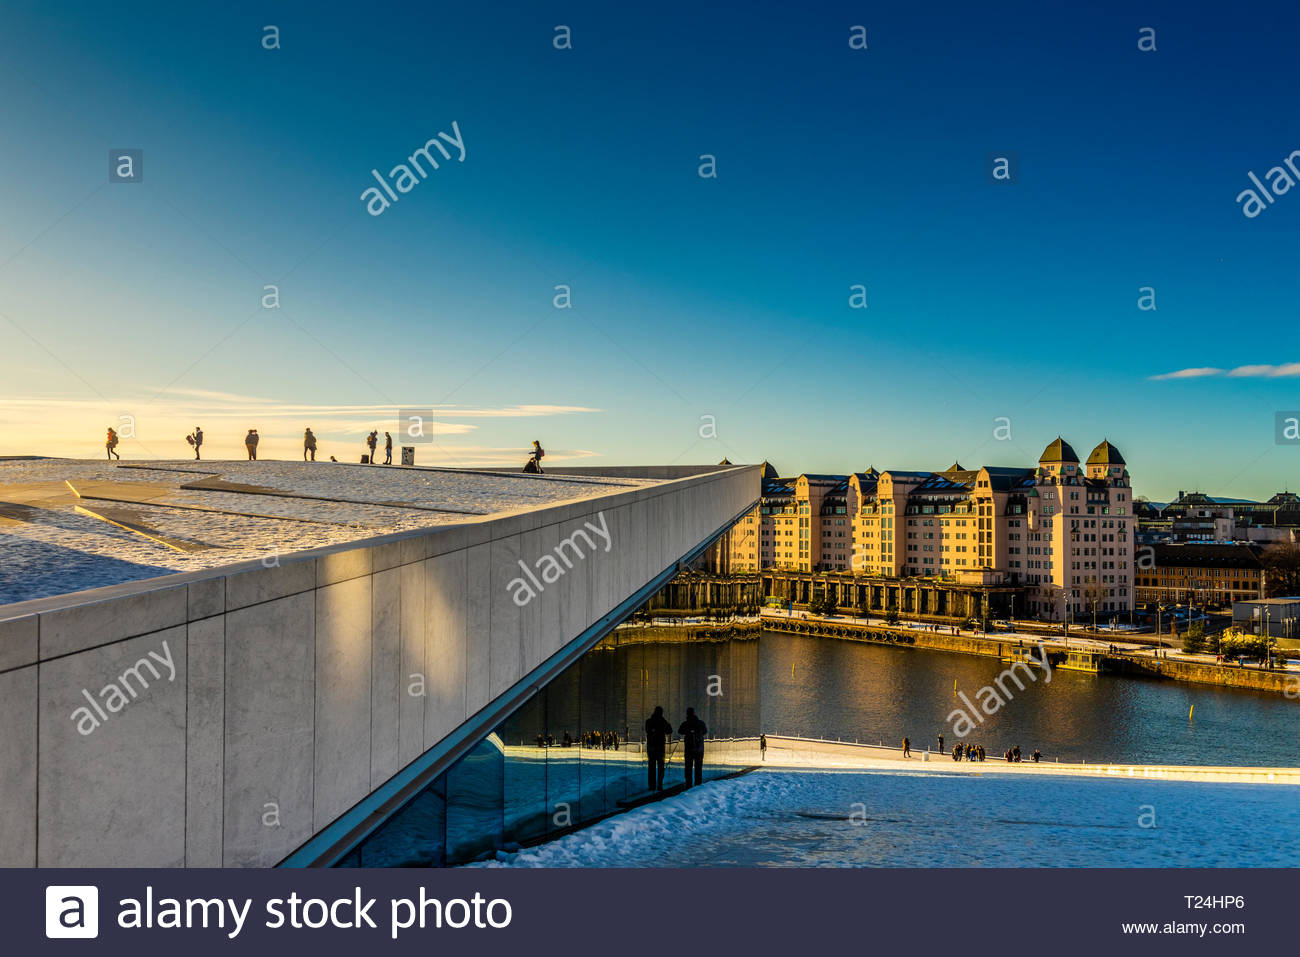 The Oslo Opera House, at the edge of the Oslo Fjord, built in 2008, Oslo, Norway. - Stock Image